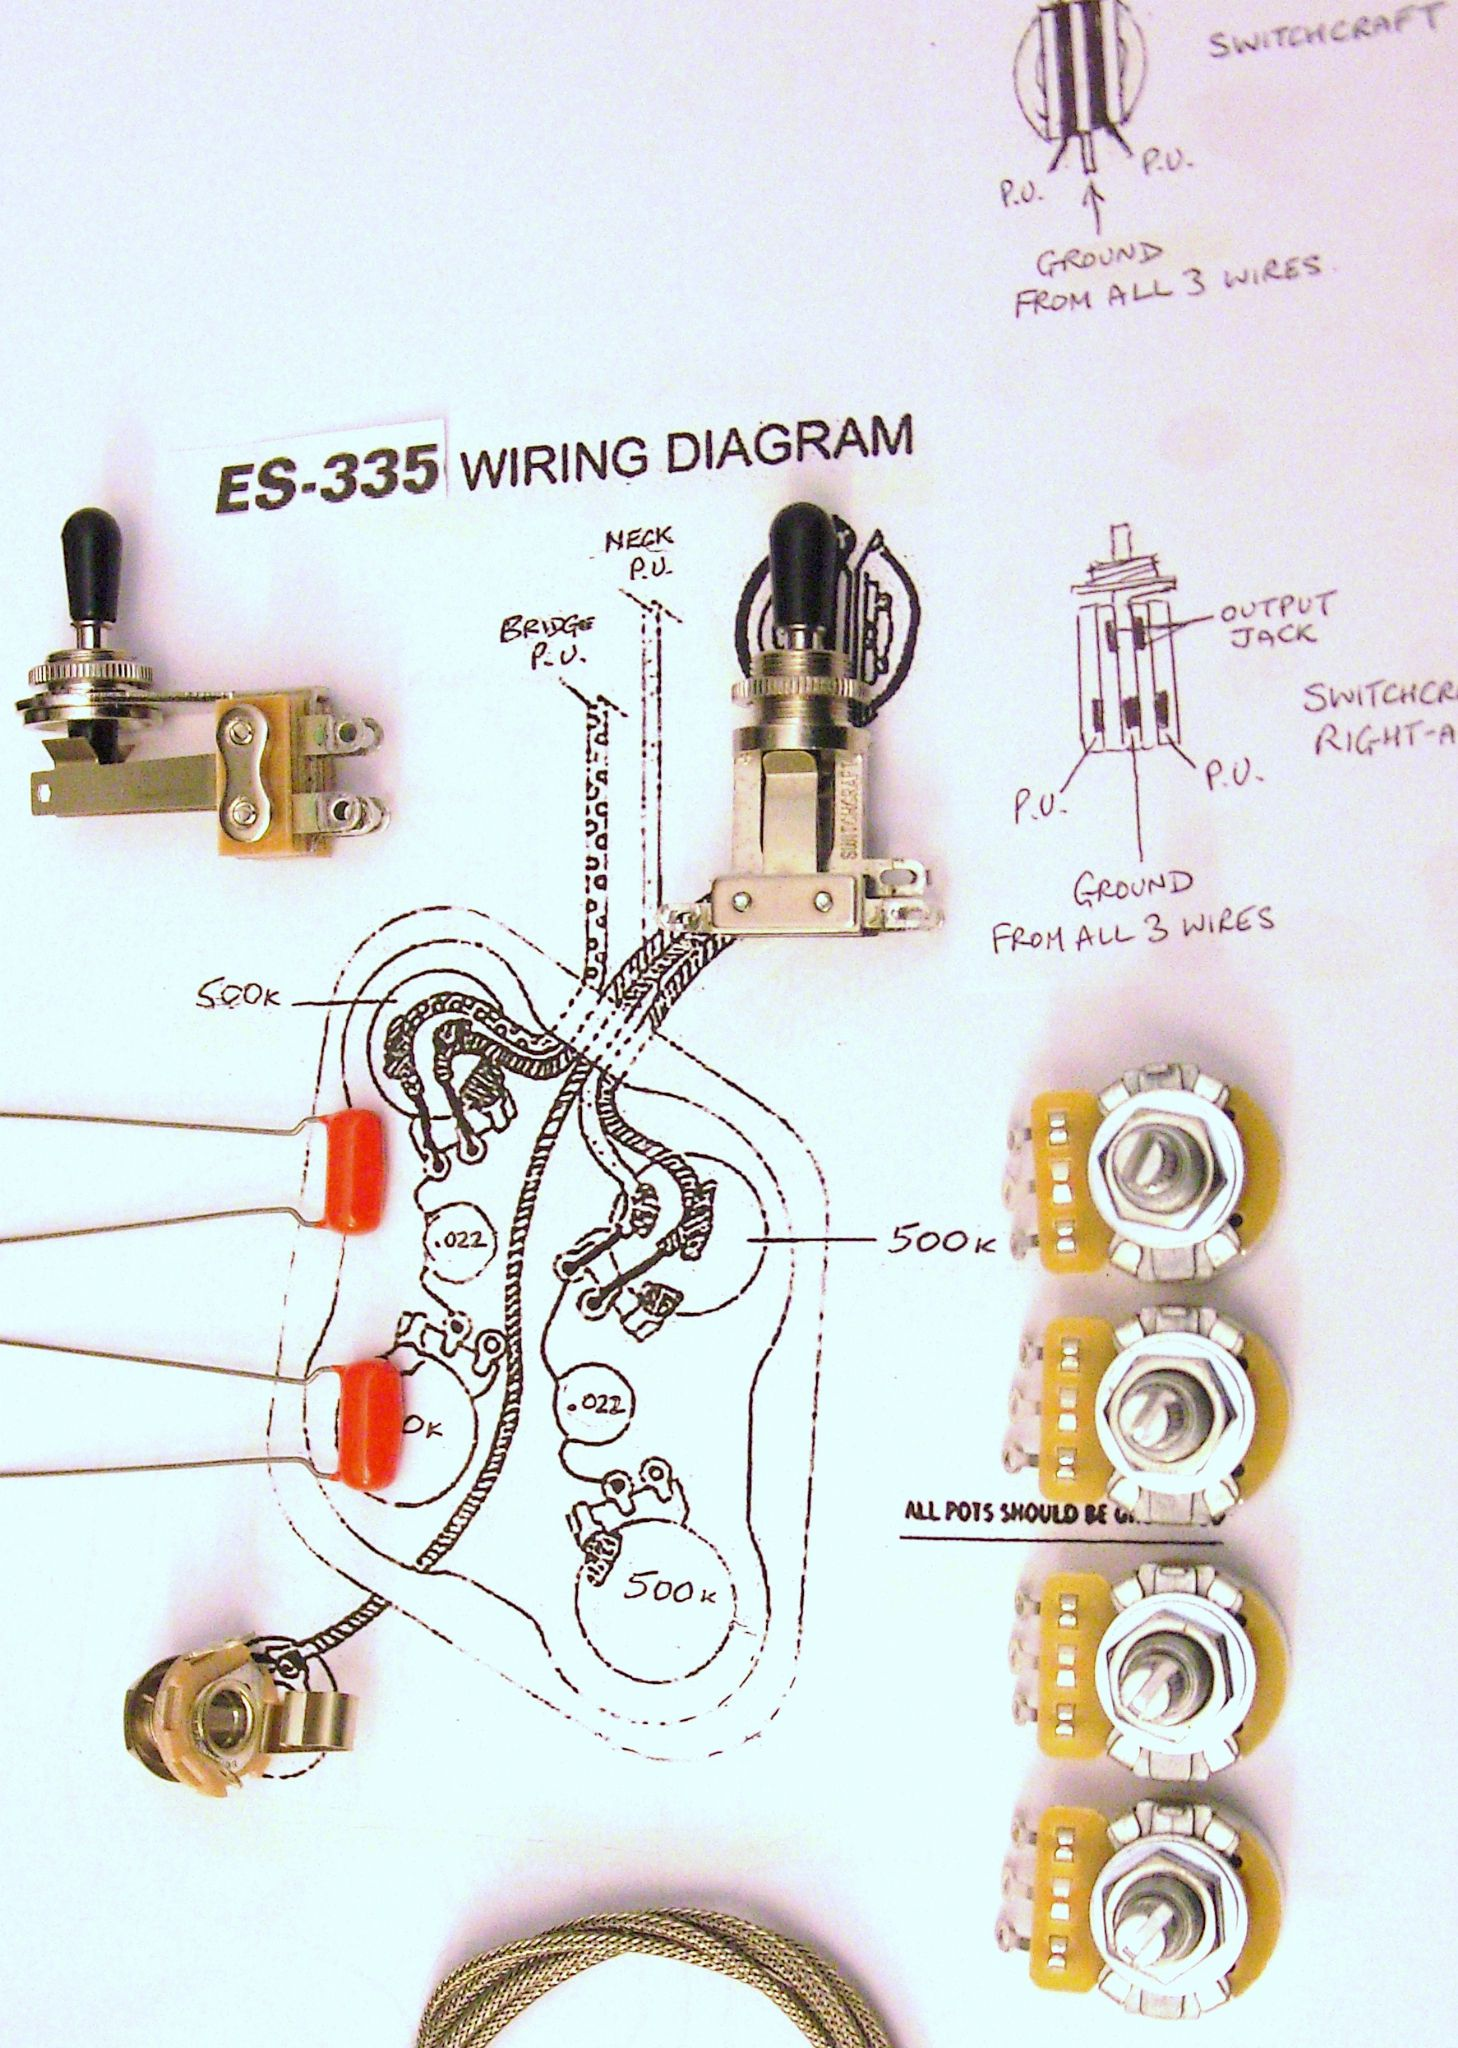 wiring kit for 335 with short switchcraft toggle switch 1767 p wiring kit for 335 with short switchcraft toggle switch switchcraft jack wiring diagram at aneh.co